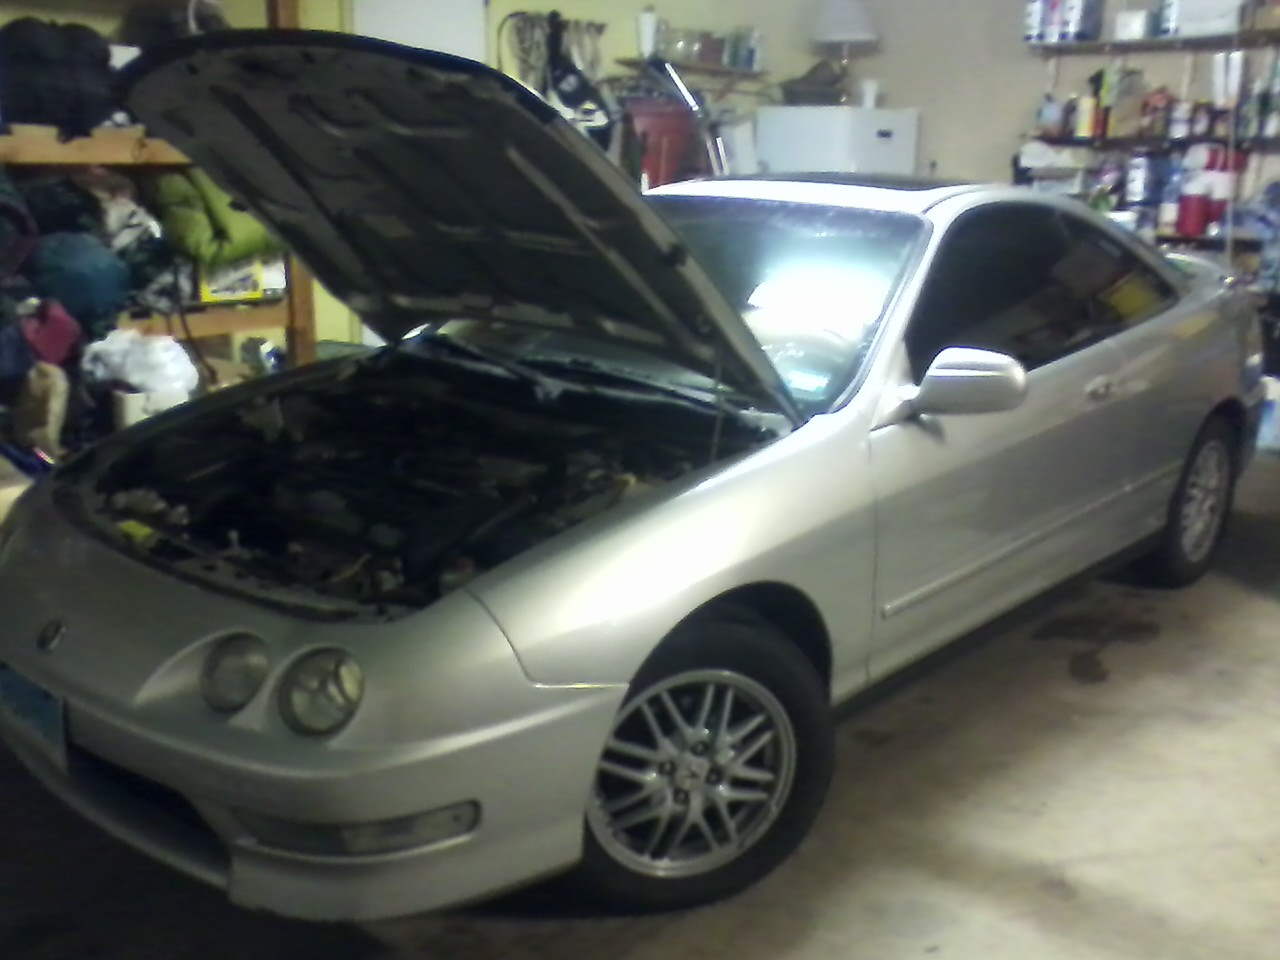 1999 Acura Integra 2 Dr LS Hatchback picture, engine, exterior